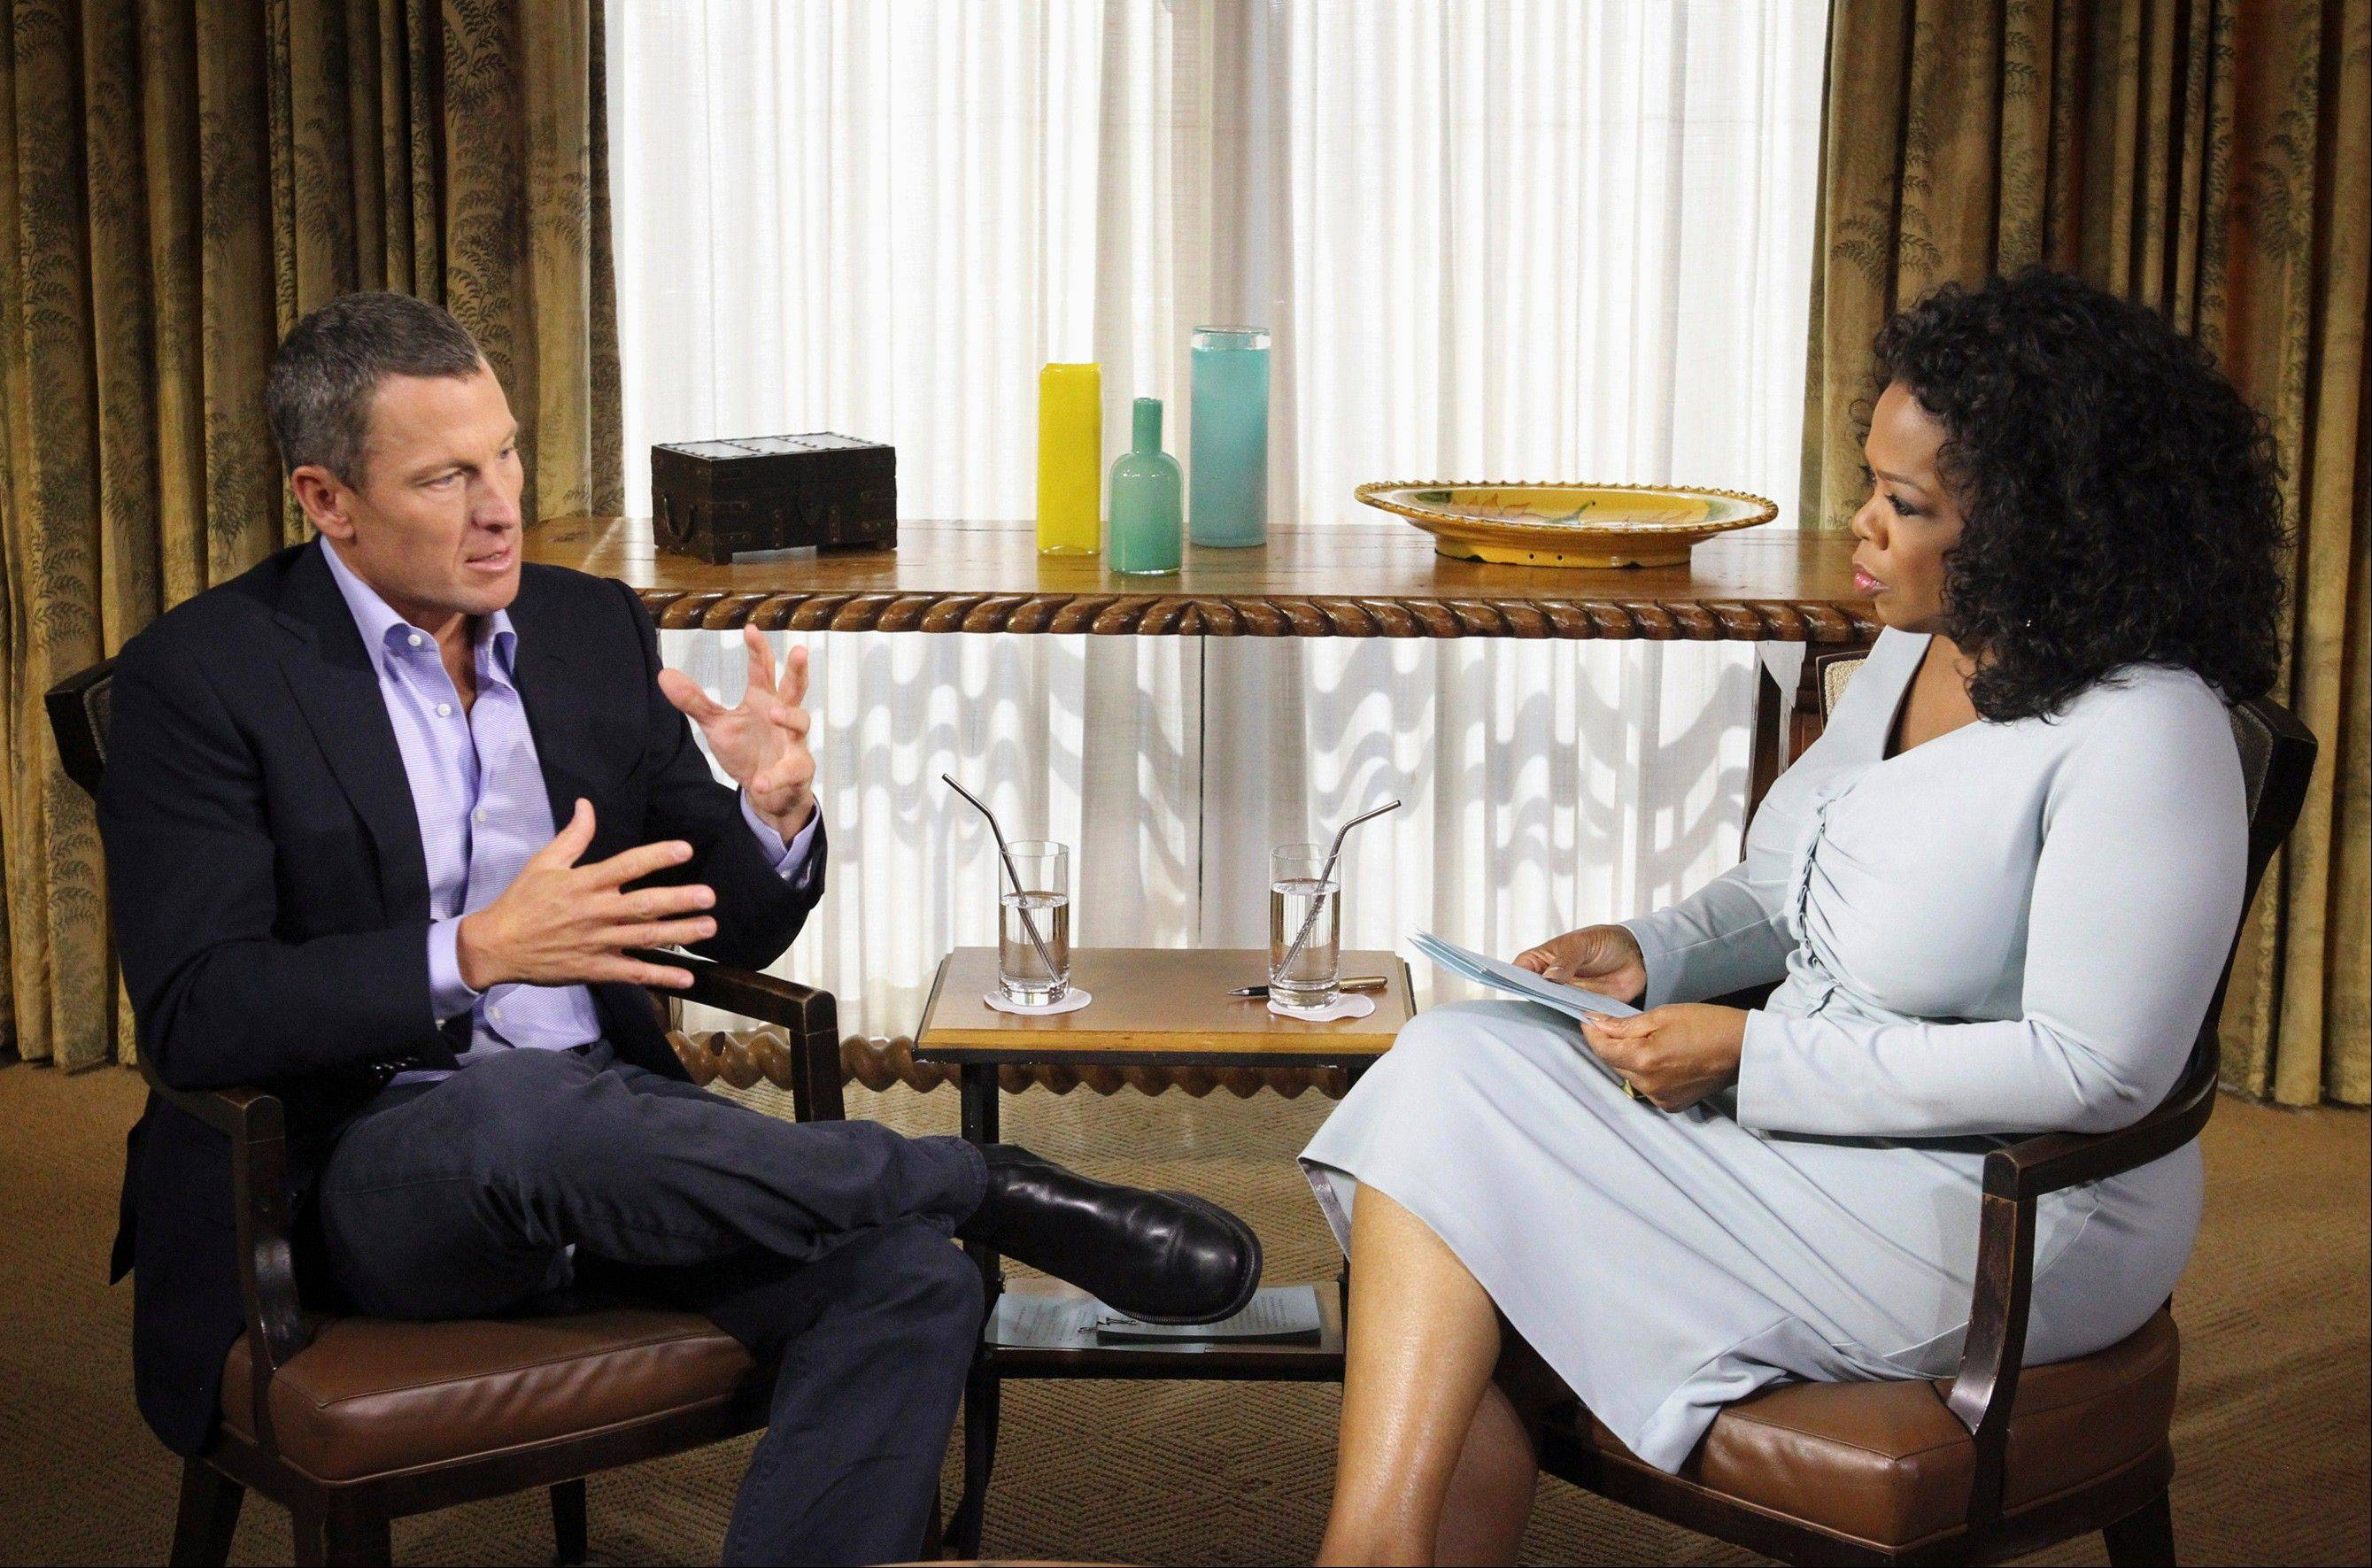 Lance Armstrong, the biggest sports liar of them all, showed himself on Oprah's show to be the same narcissistic, cold guy he always was.